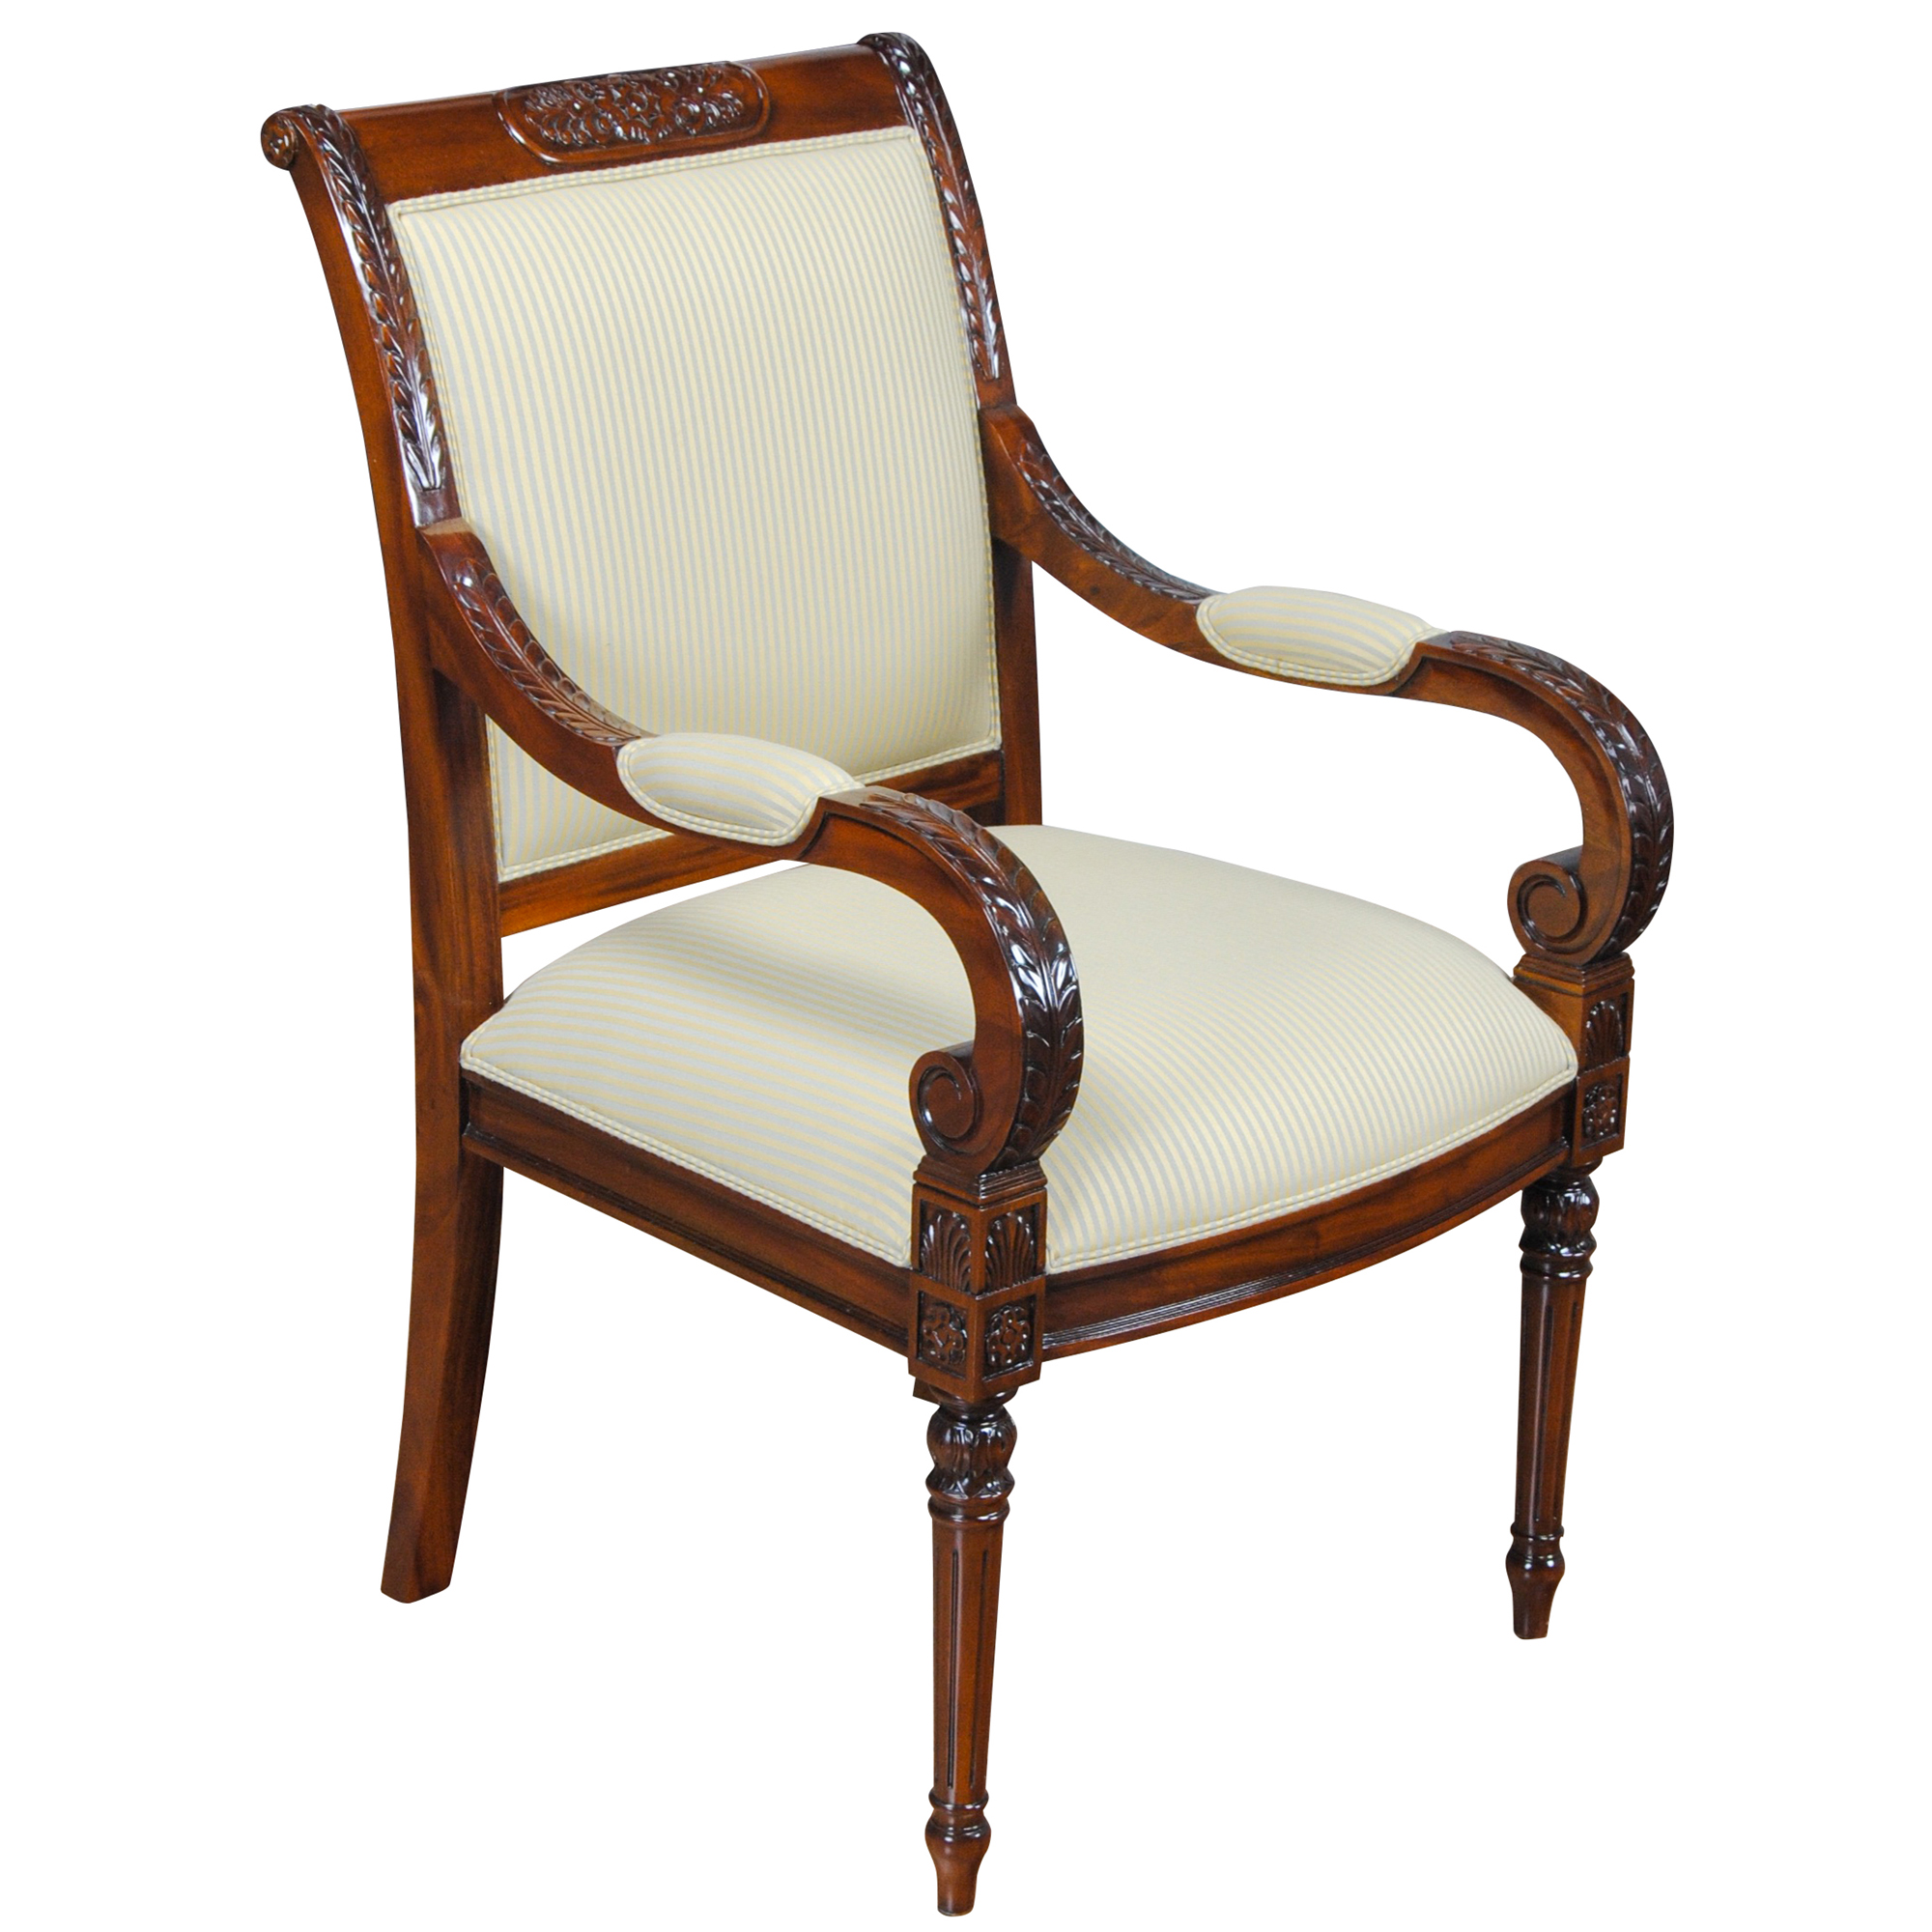 Dining Room Arm Chairs Upholstered: NDRAC022